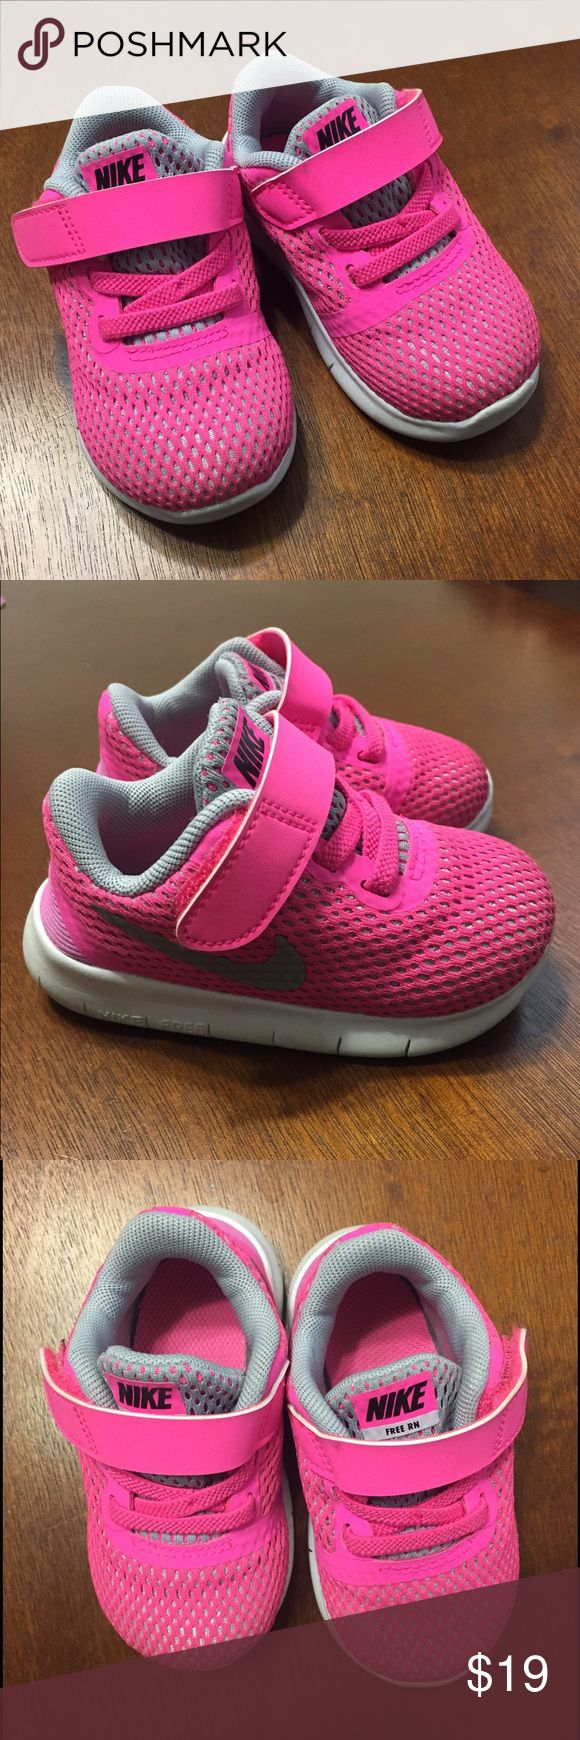 Excellent Condition Toddler Pink Nike Shoes Super cute, almost new toddler Nikes. Velcro closure. Size 4.5. Only signs of wear are a little bit of dirt on the bottoms of the shoes, otherwise immaculate. Nike Shoes